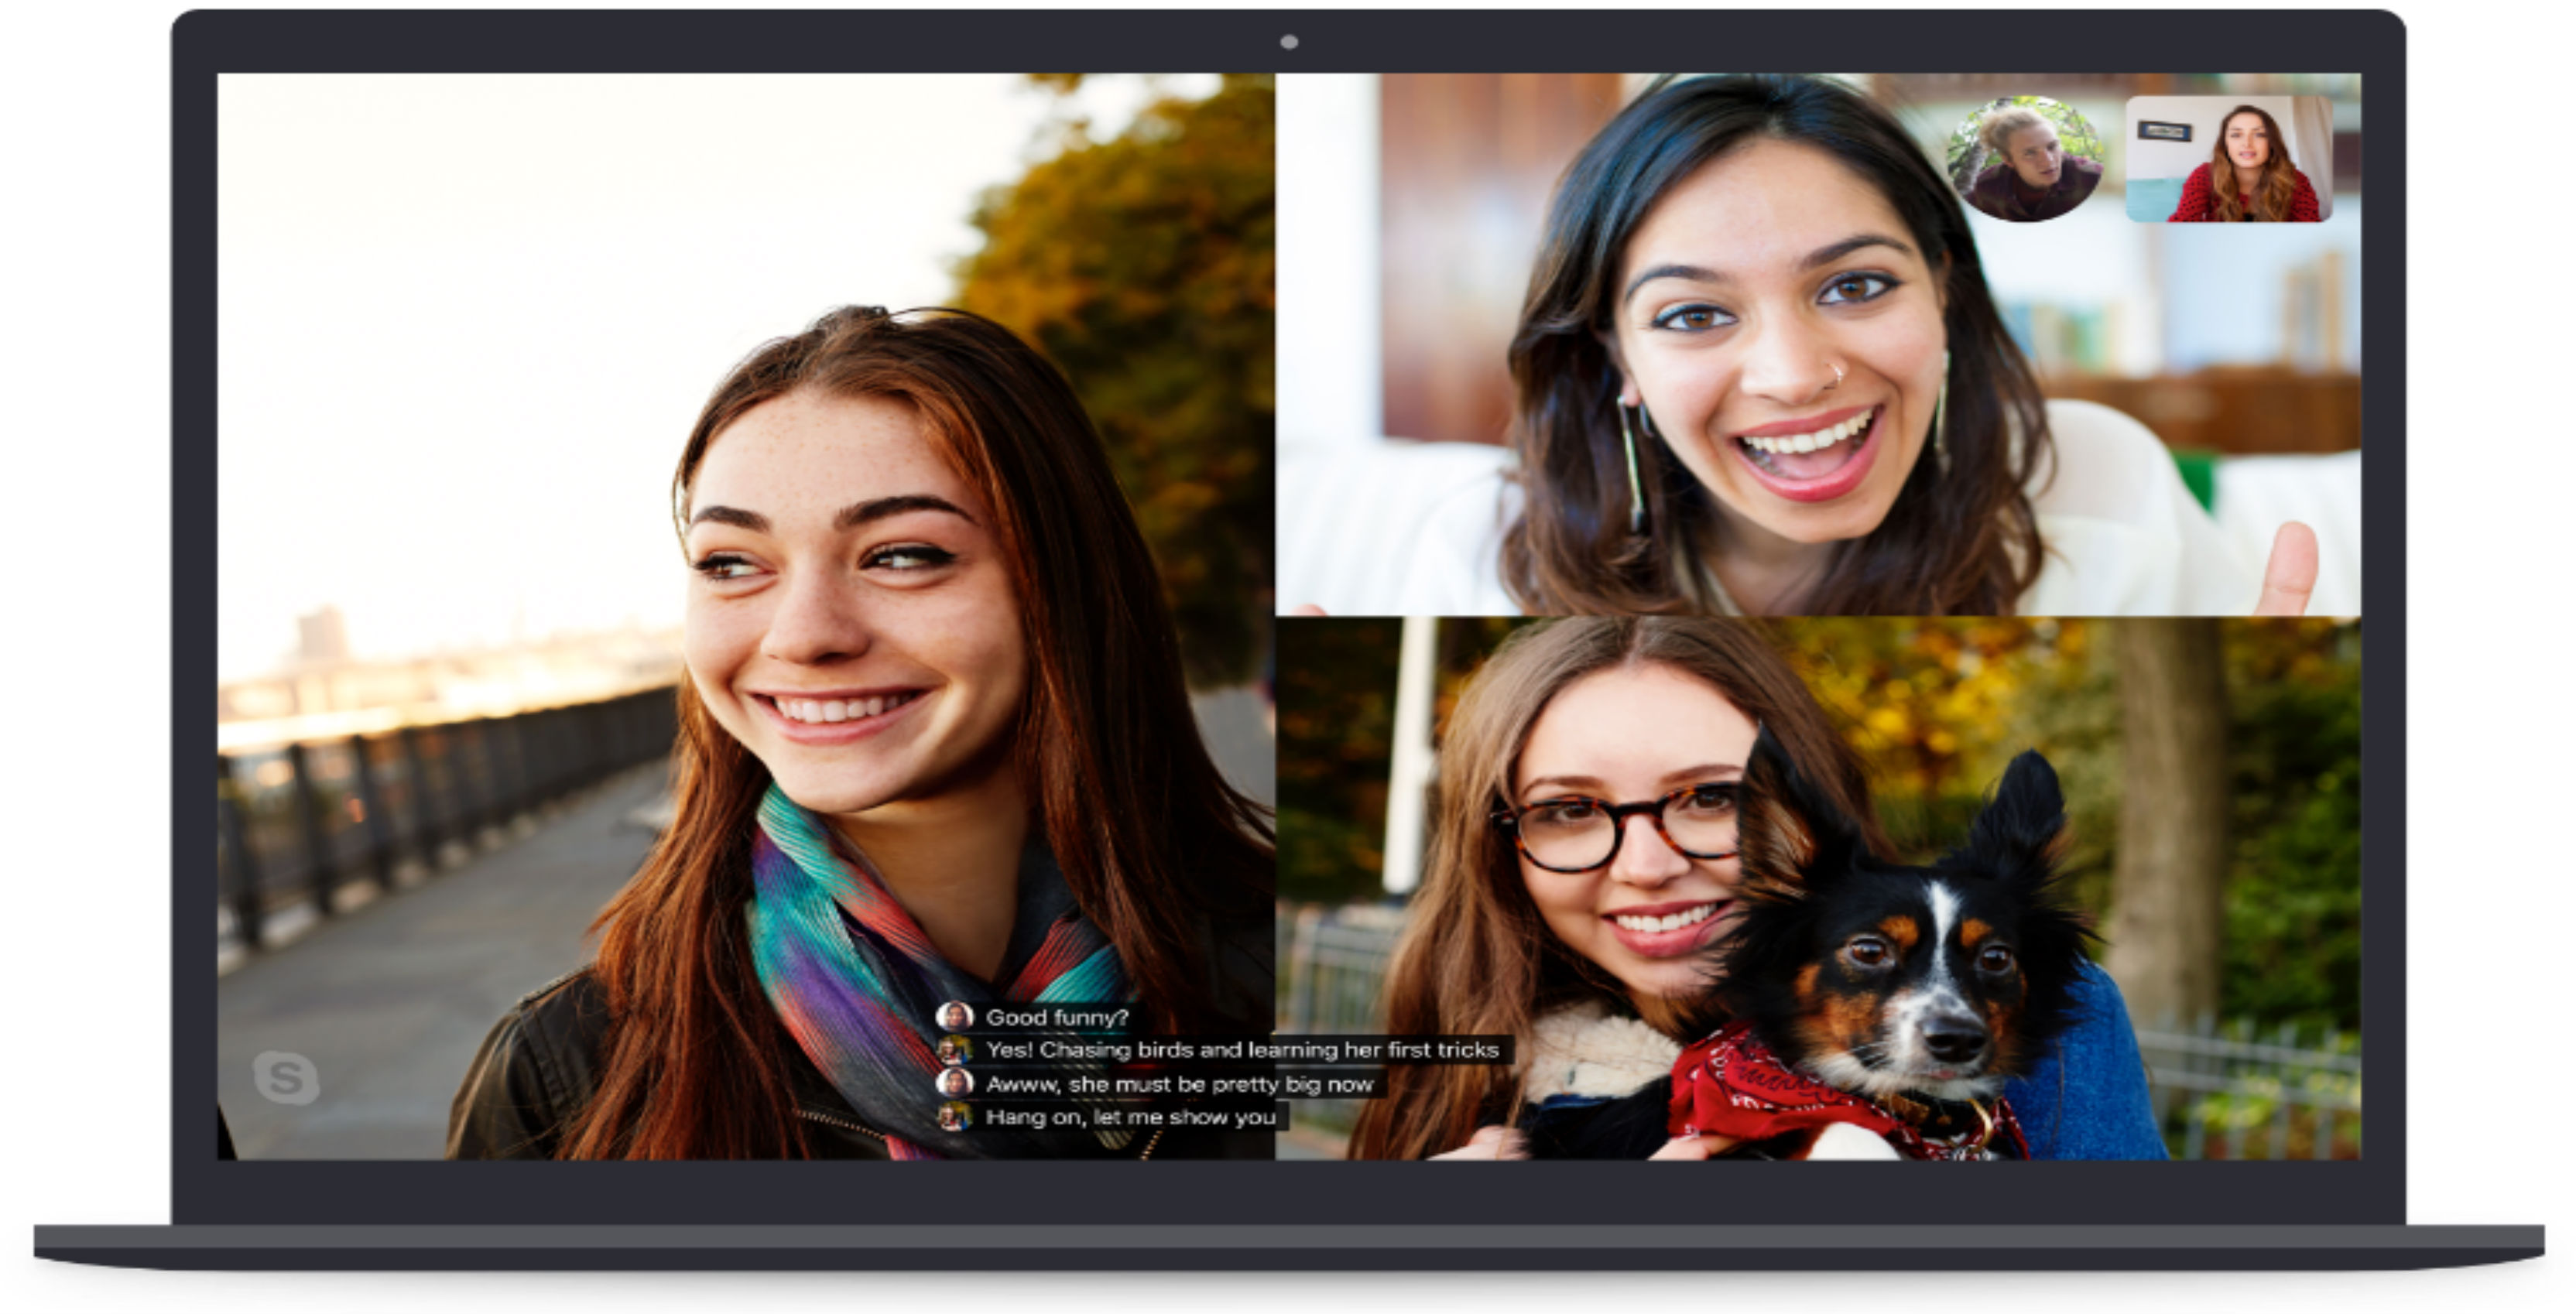 Skype to aid real-time transcription and AI captions in early 2019